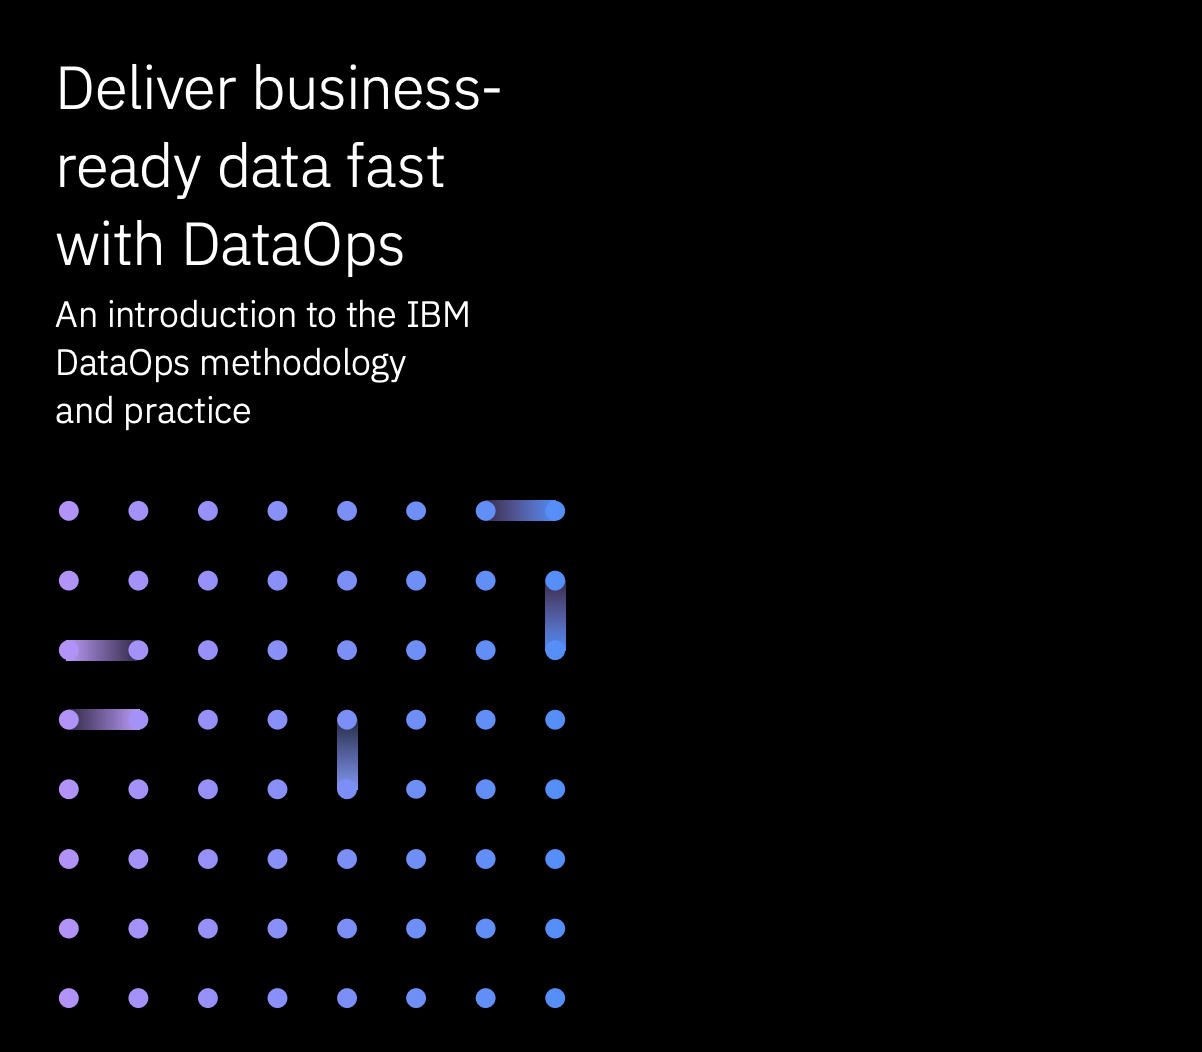 Deliver Business Ready Data Fast - Image for Whitepaper